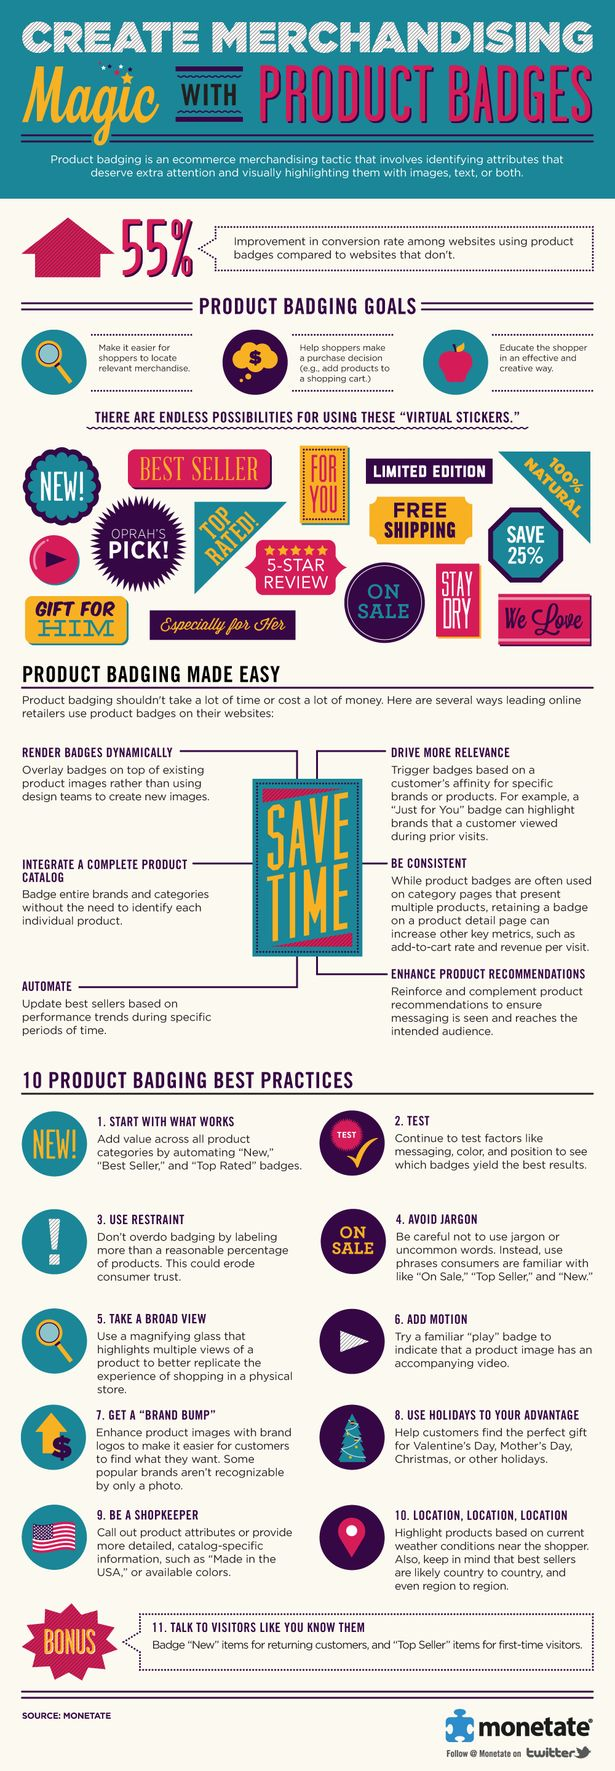 Create merchandising magic with product badges: infographic